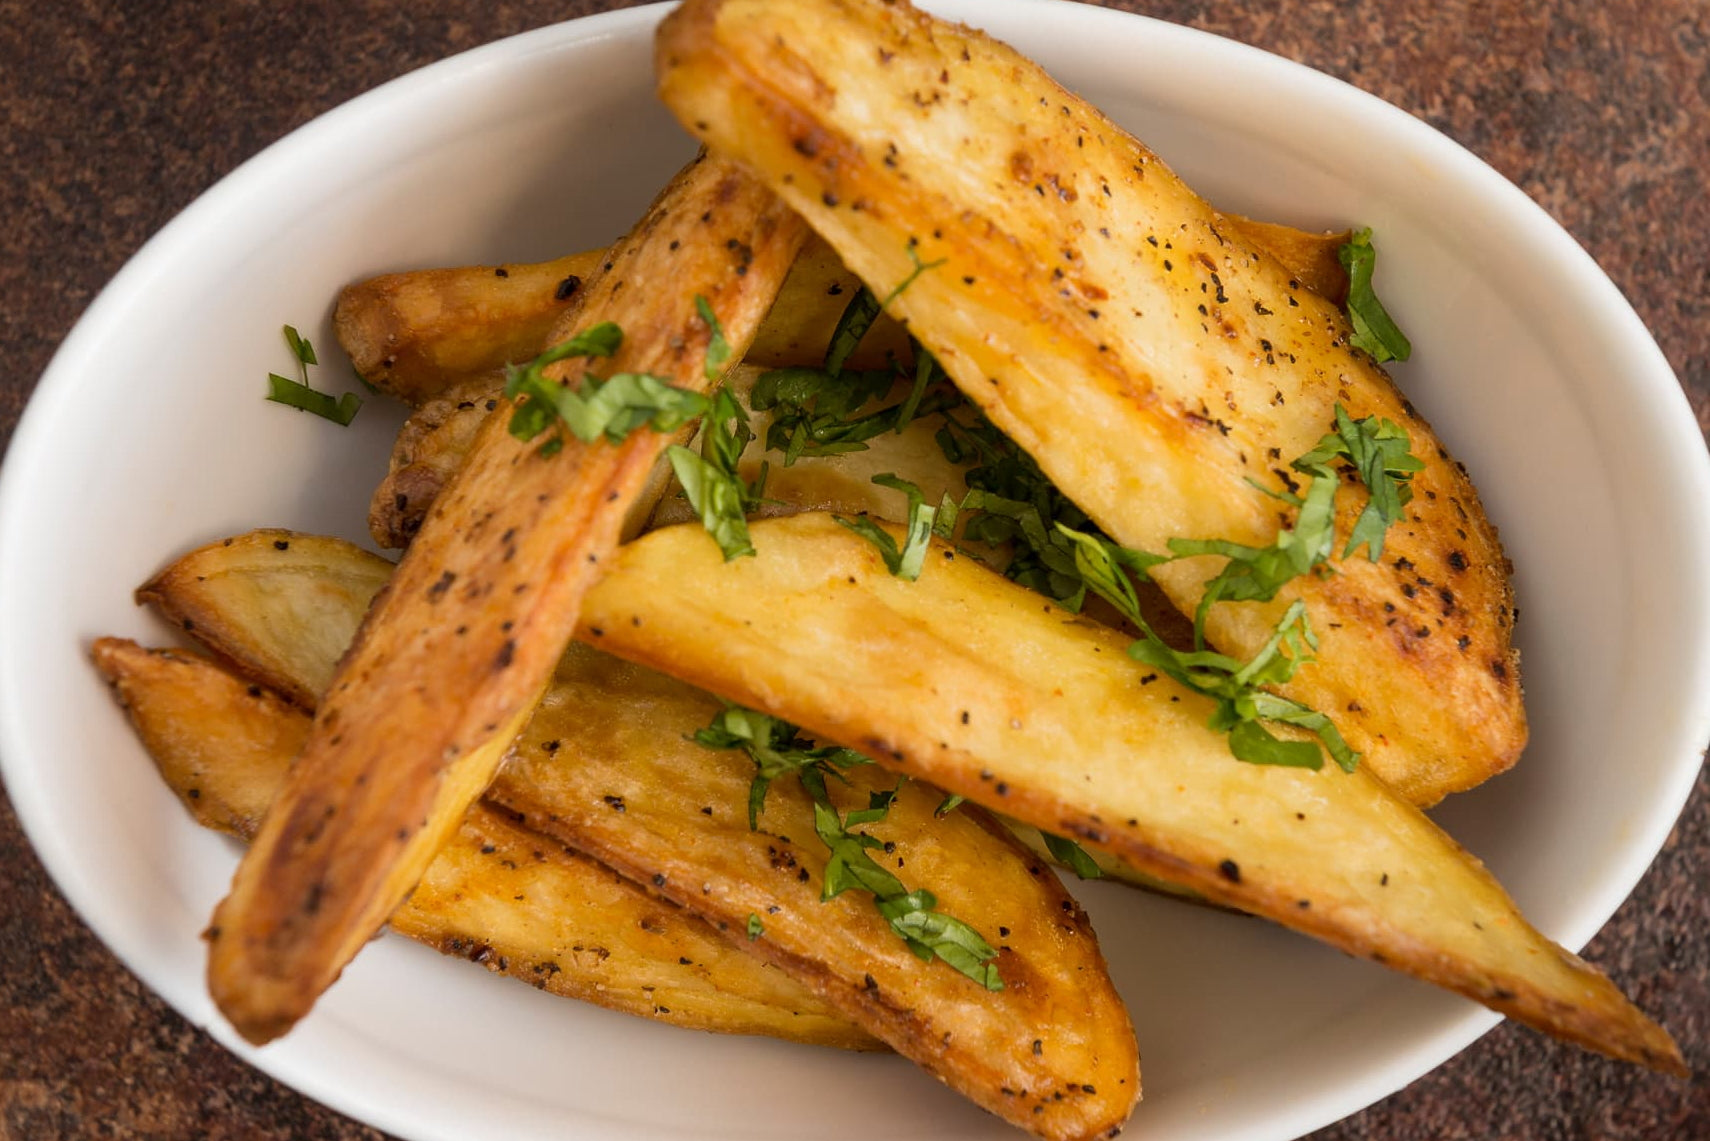 Potato Wedges To Share For 2 People (VE)